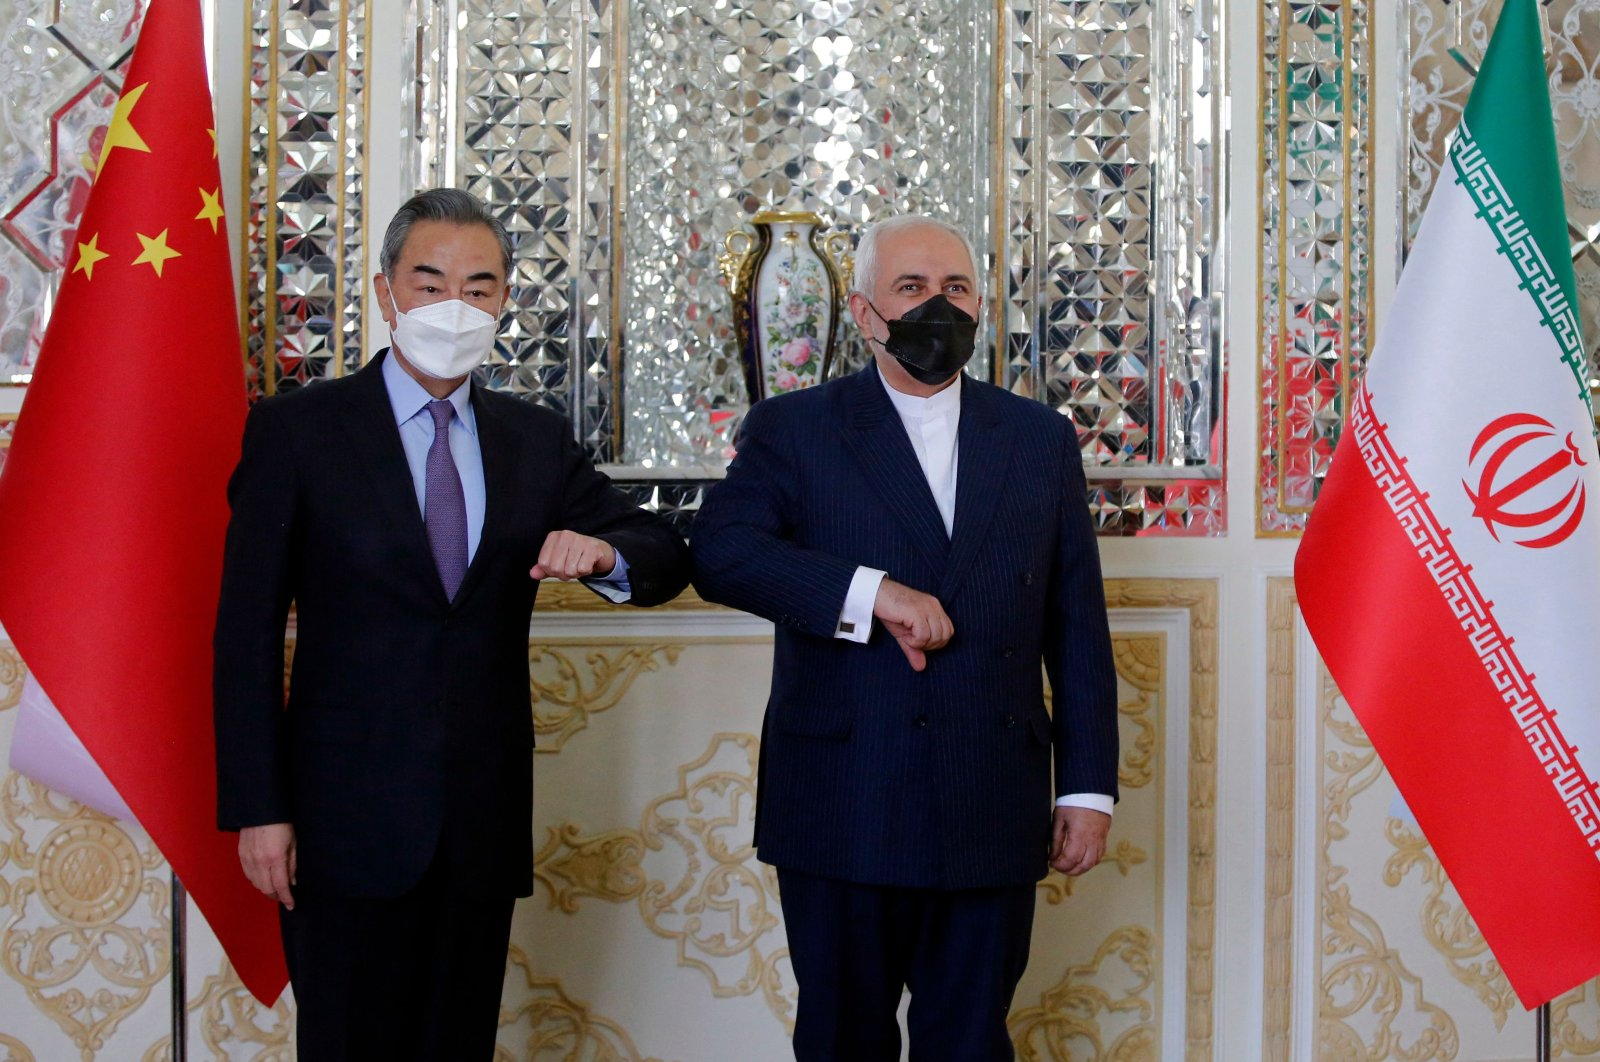 Iranian Foreign Minister Mohammad Javad Zarif (R) greets his Chinese counterpart Wang Yi, in Tehran, Iran, March 27, 2021. (AFP Photo)